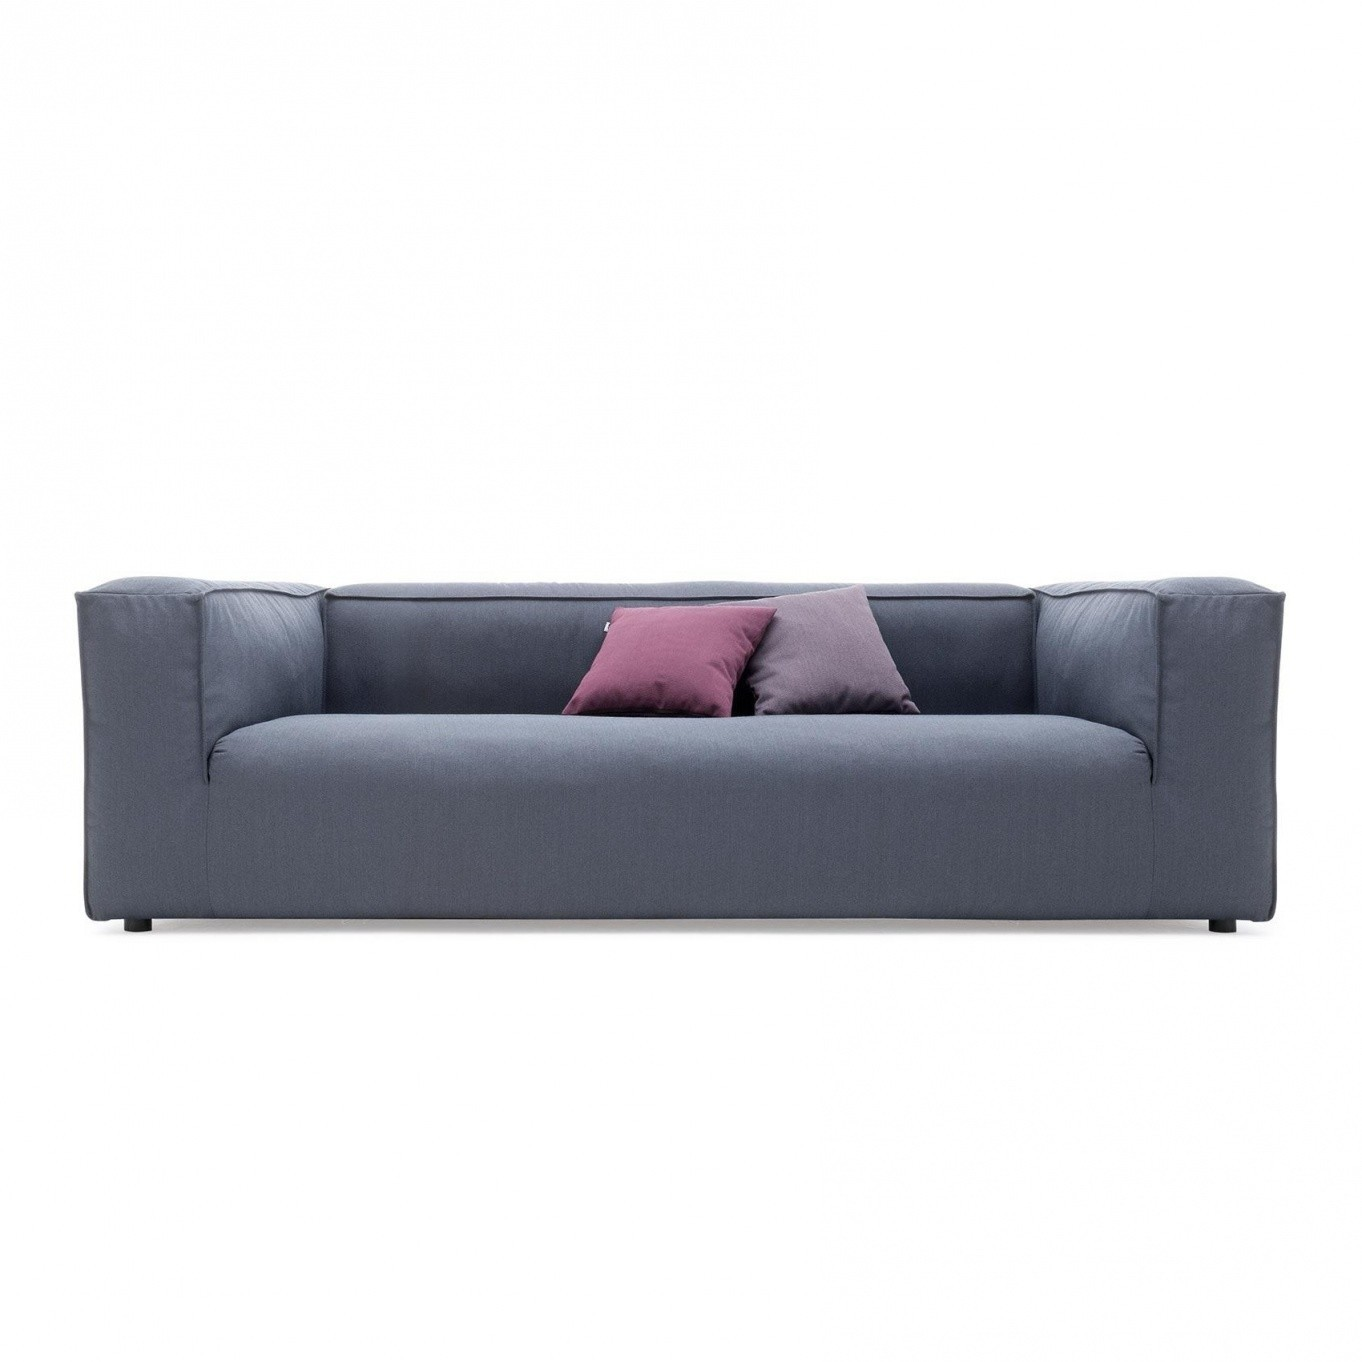 Freistil Rolf Benz Freistil 175 3 Sitzer Sofa Ambientedirect